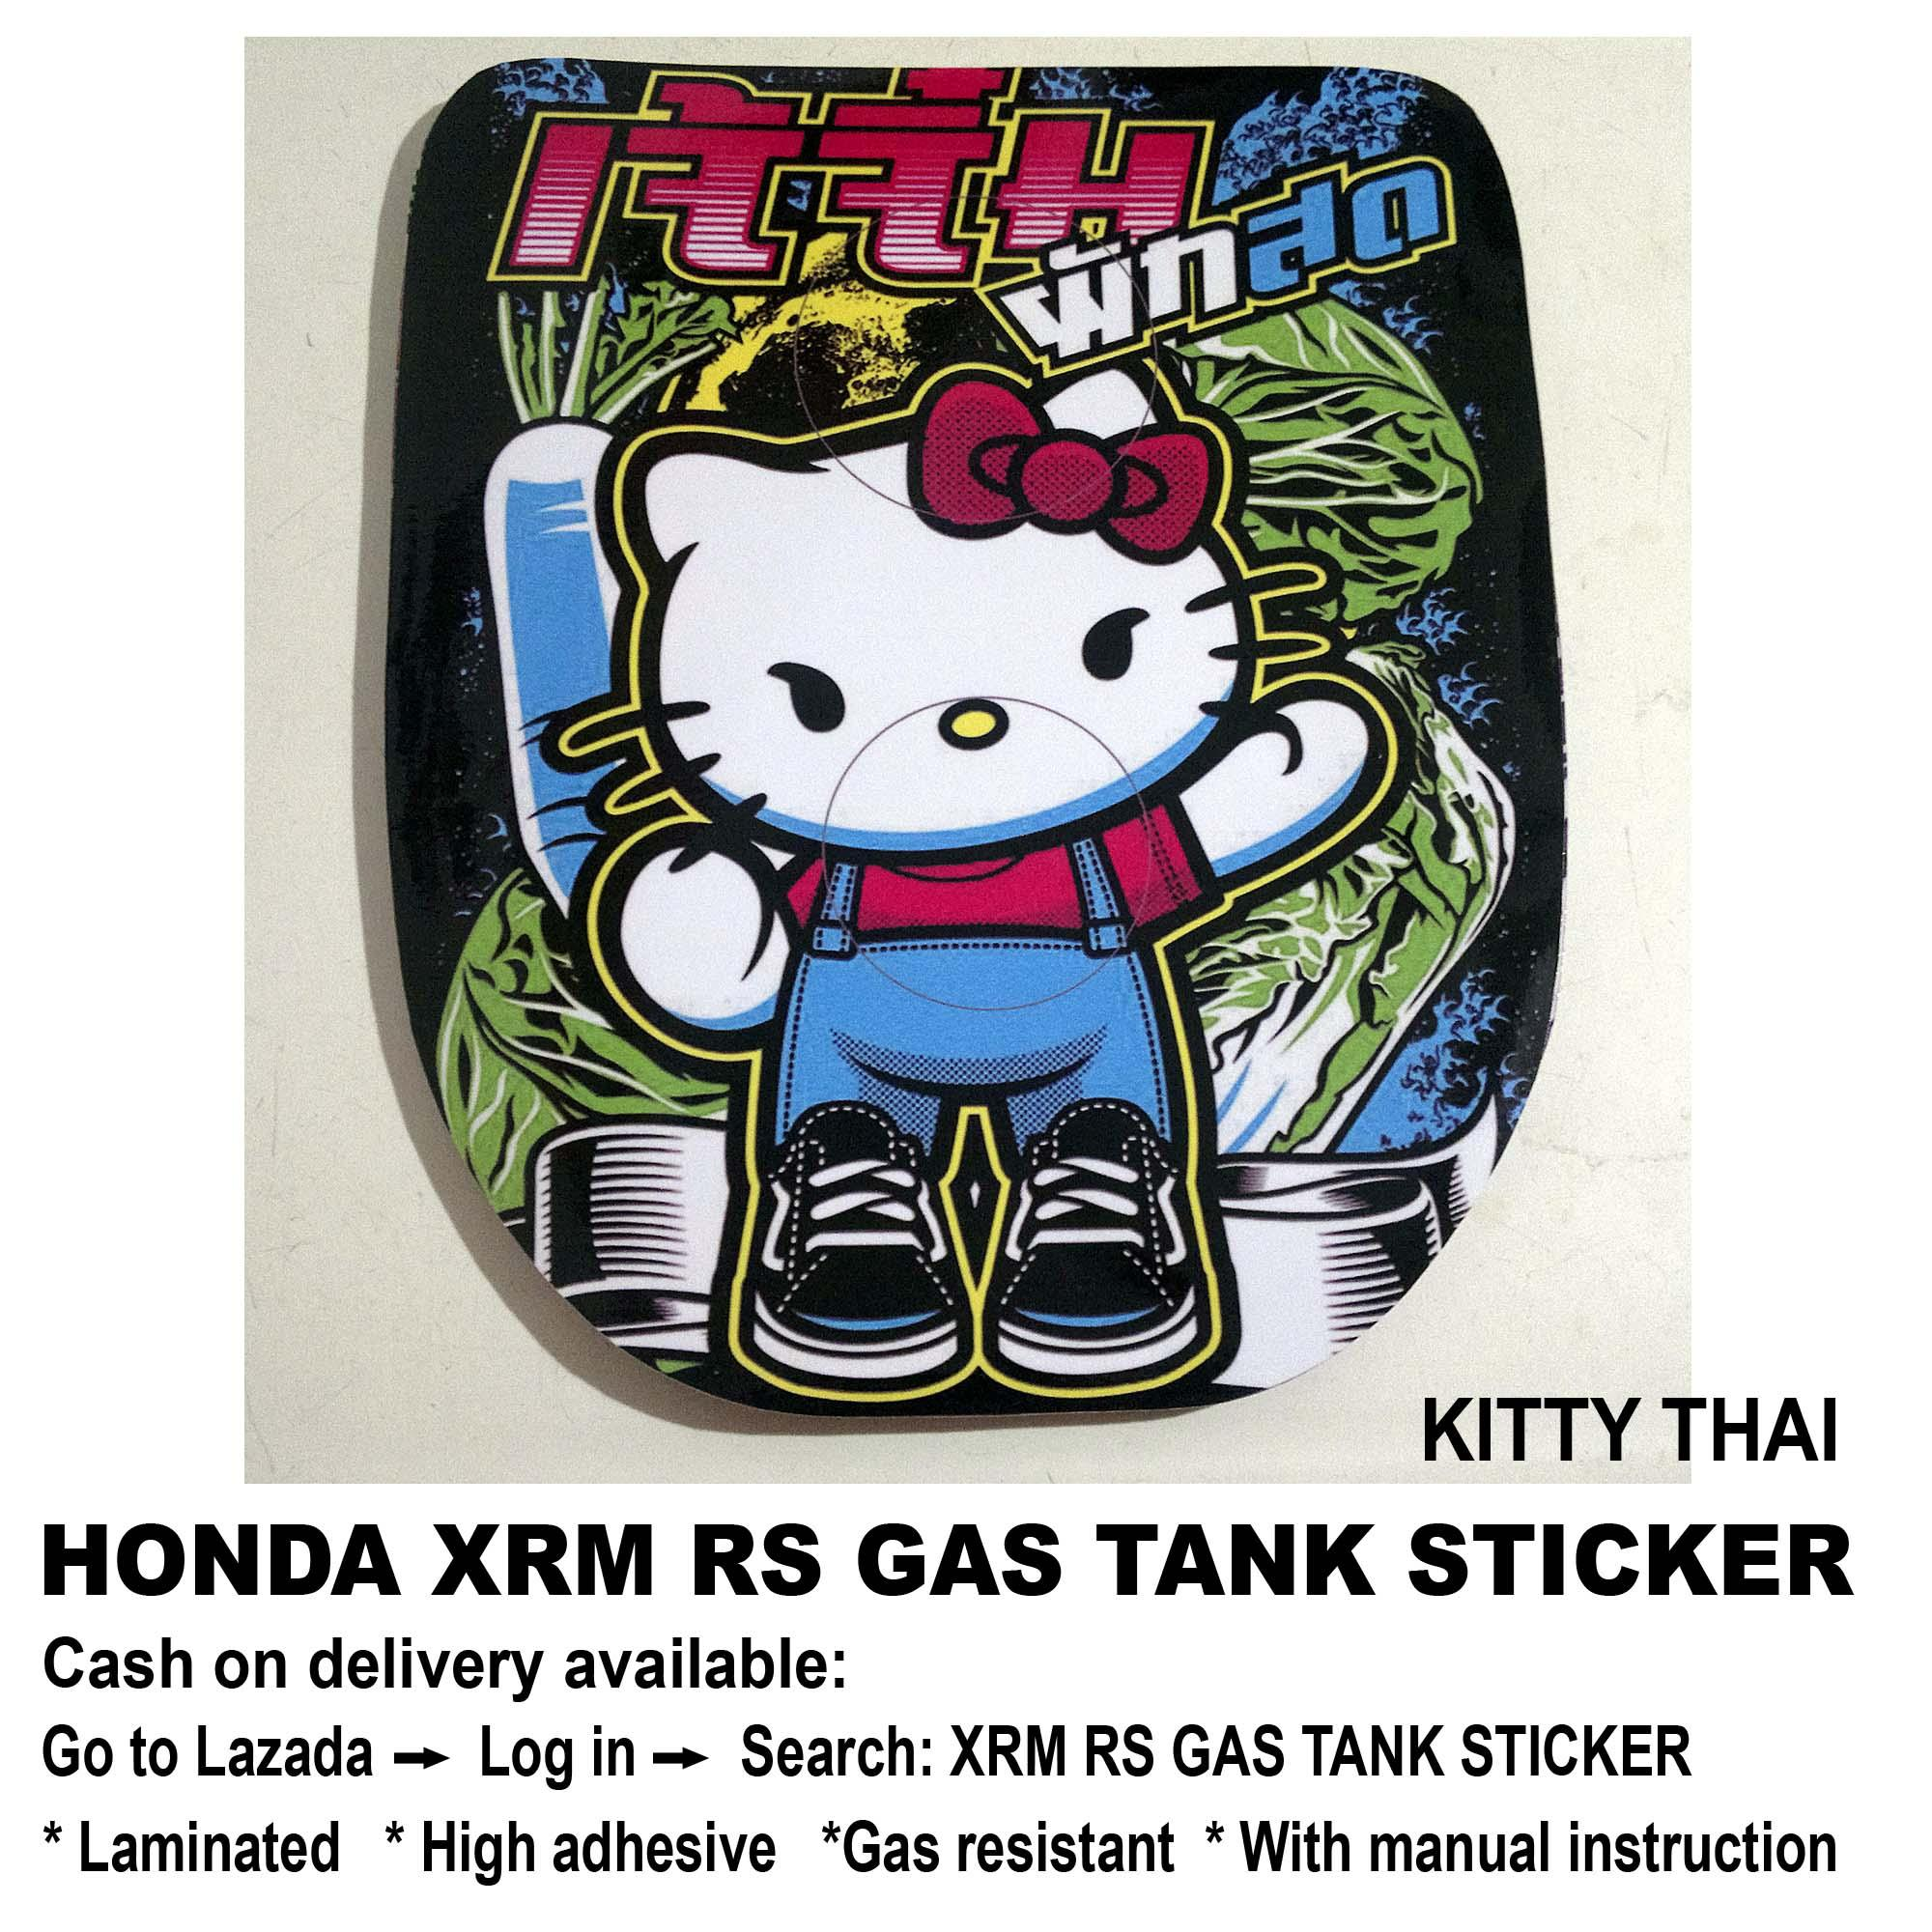 Xrm rs gas tank sticker kitty thai